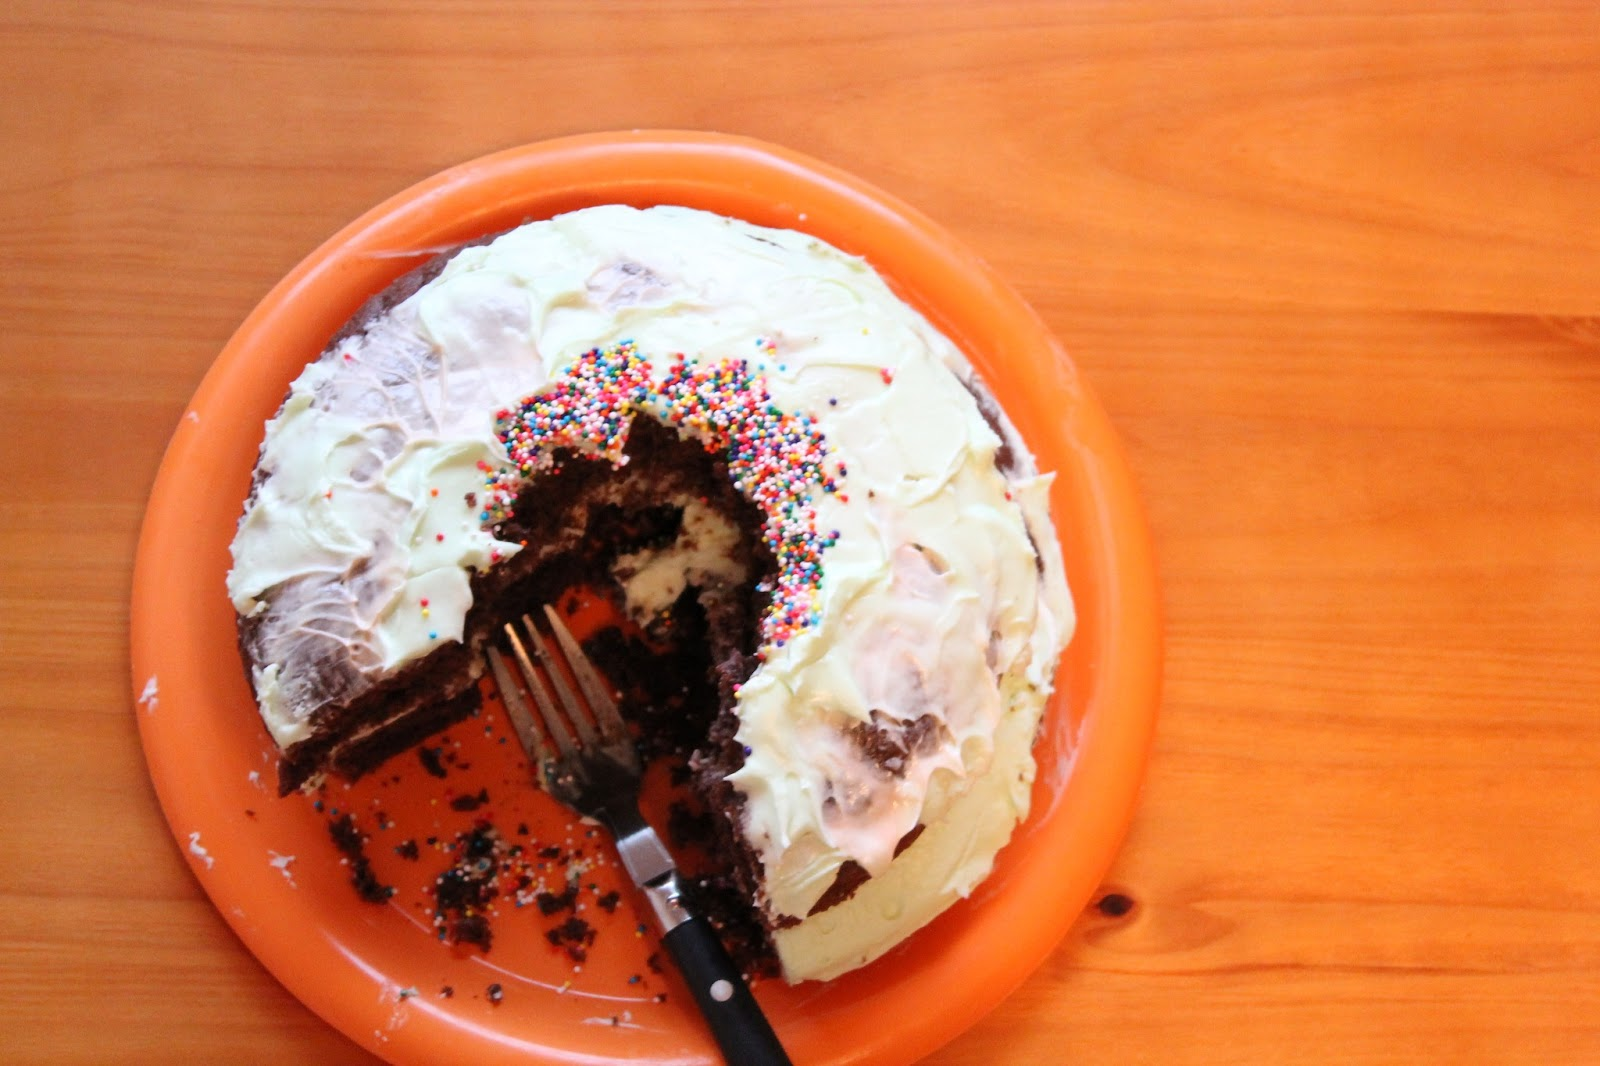 how to fix a bundt cake that fell apart